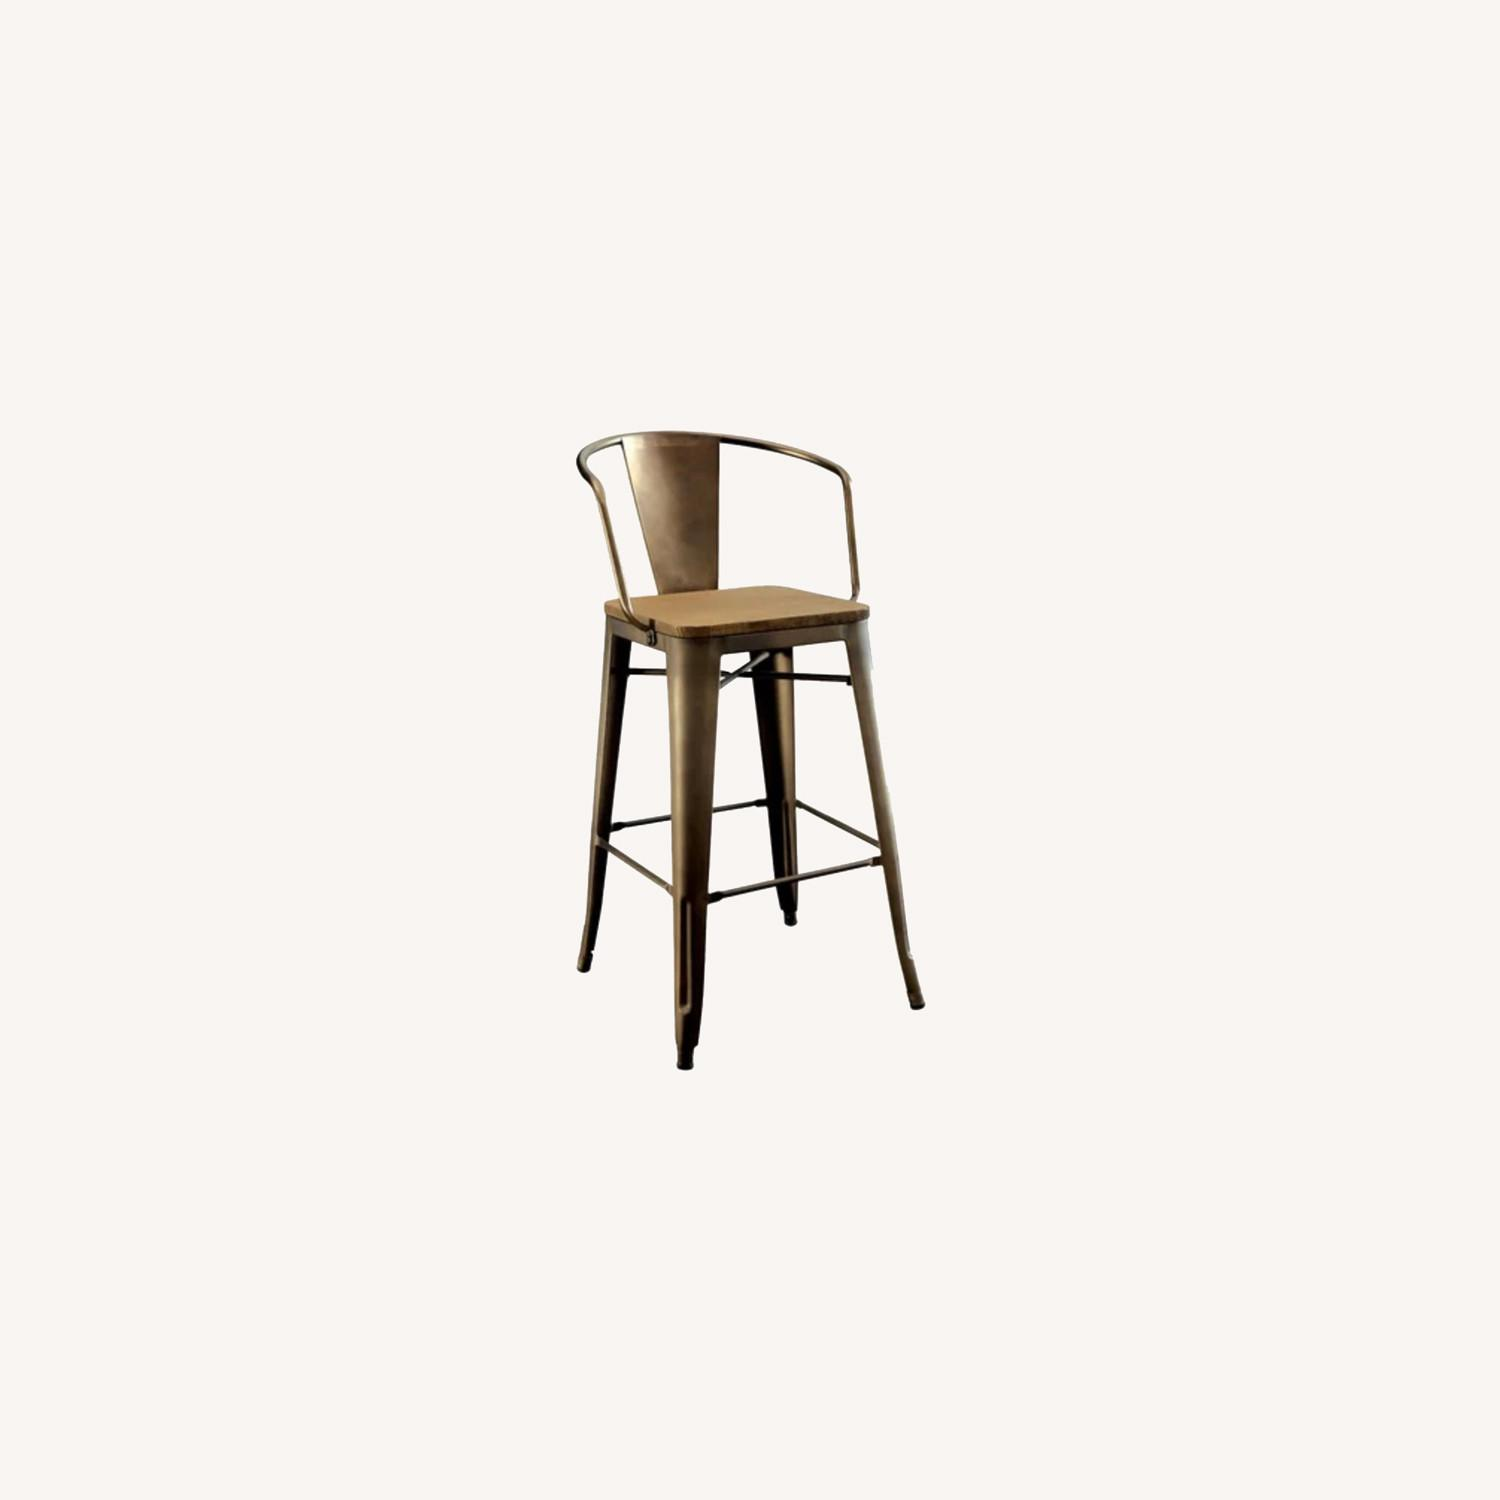 Wayfair Set of two Industrial Counter Stools - image-0